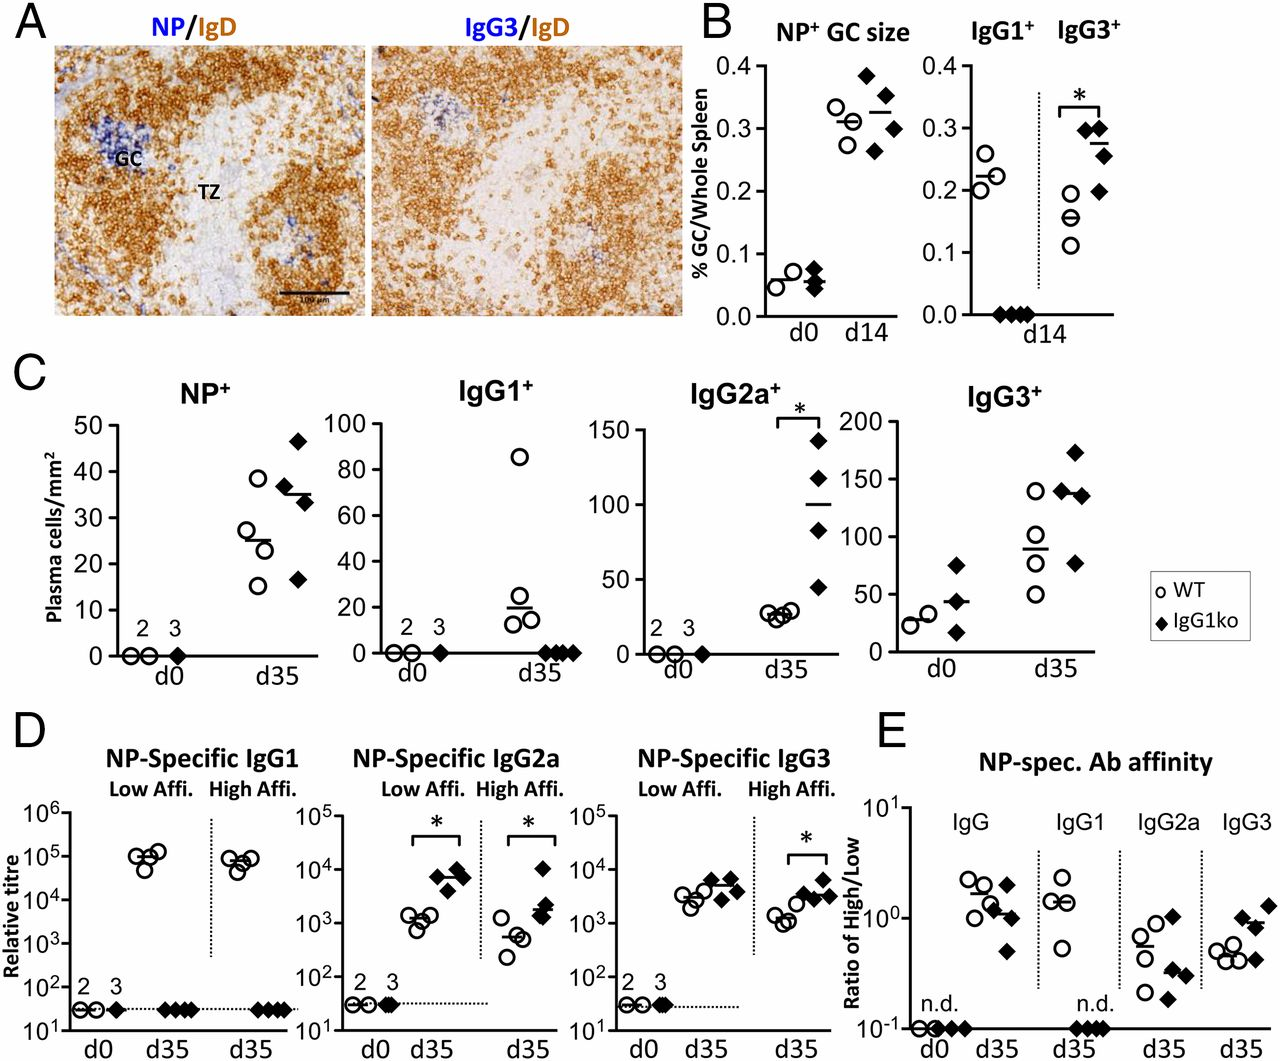 IgG1 Is Required for Optimal Protection after Immunization